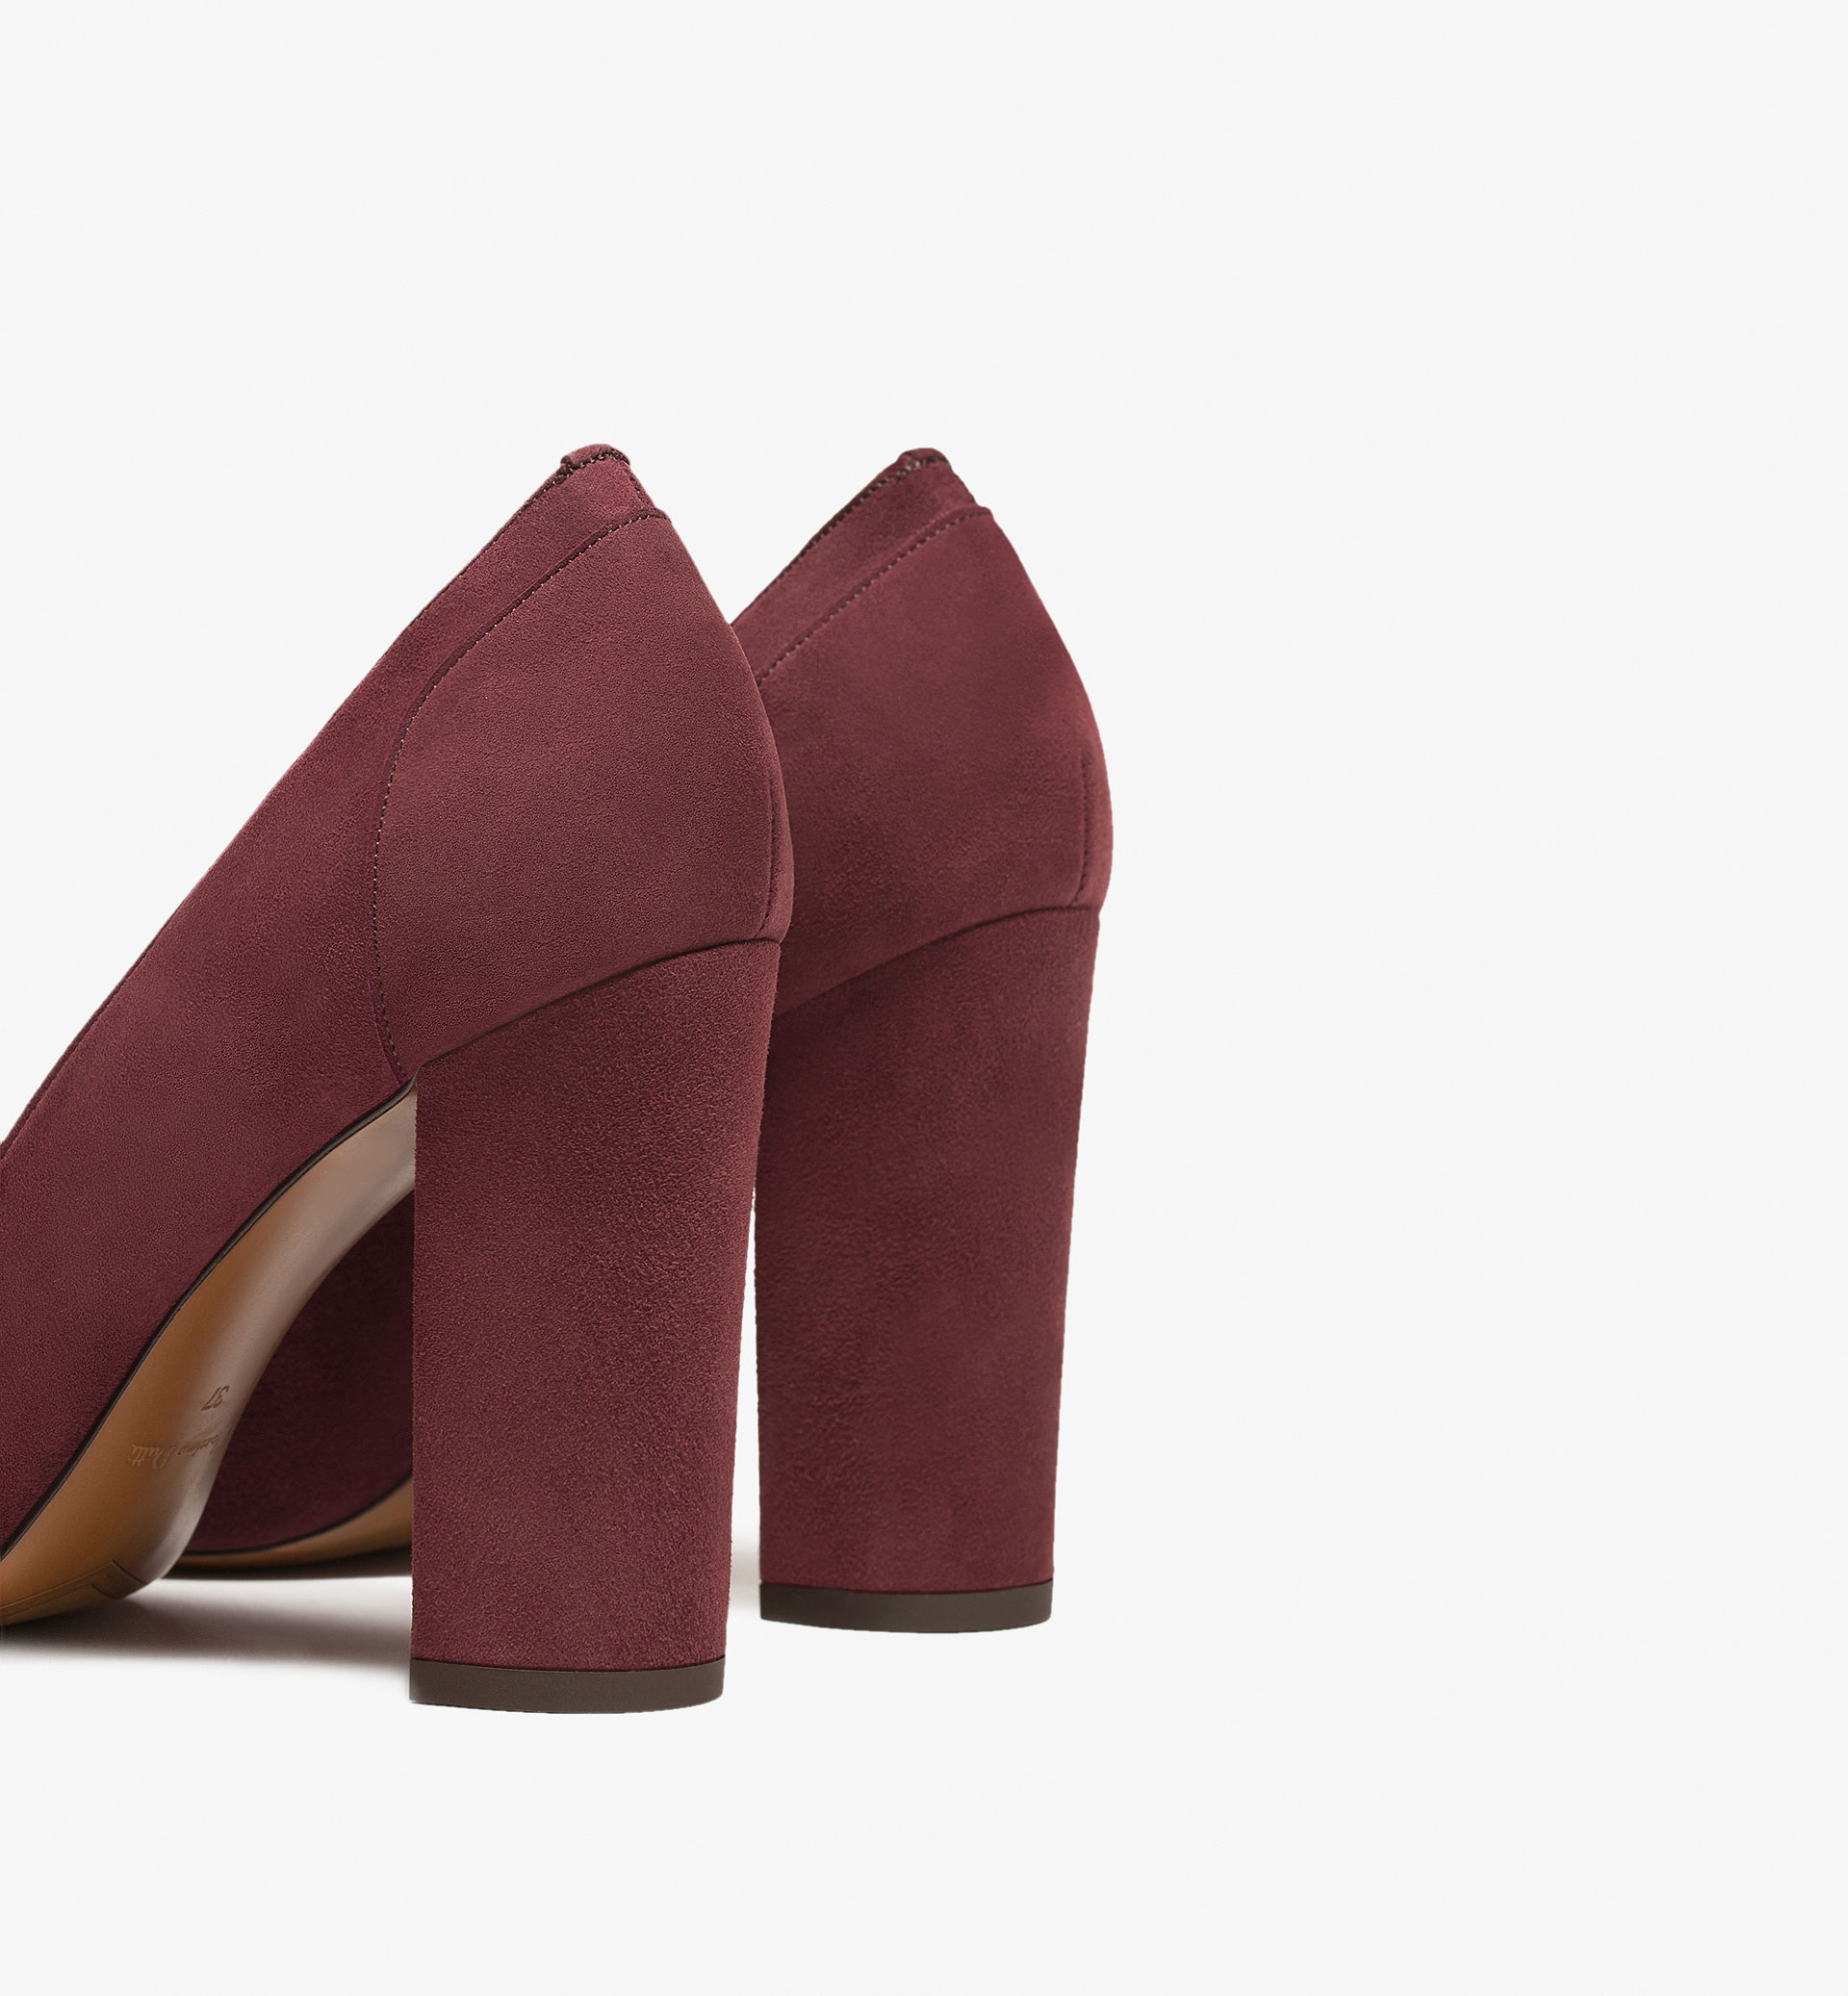 BURGUNDY SUEDE HIGH HEEL SHOES